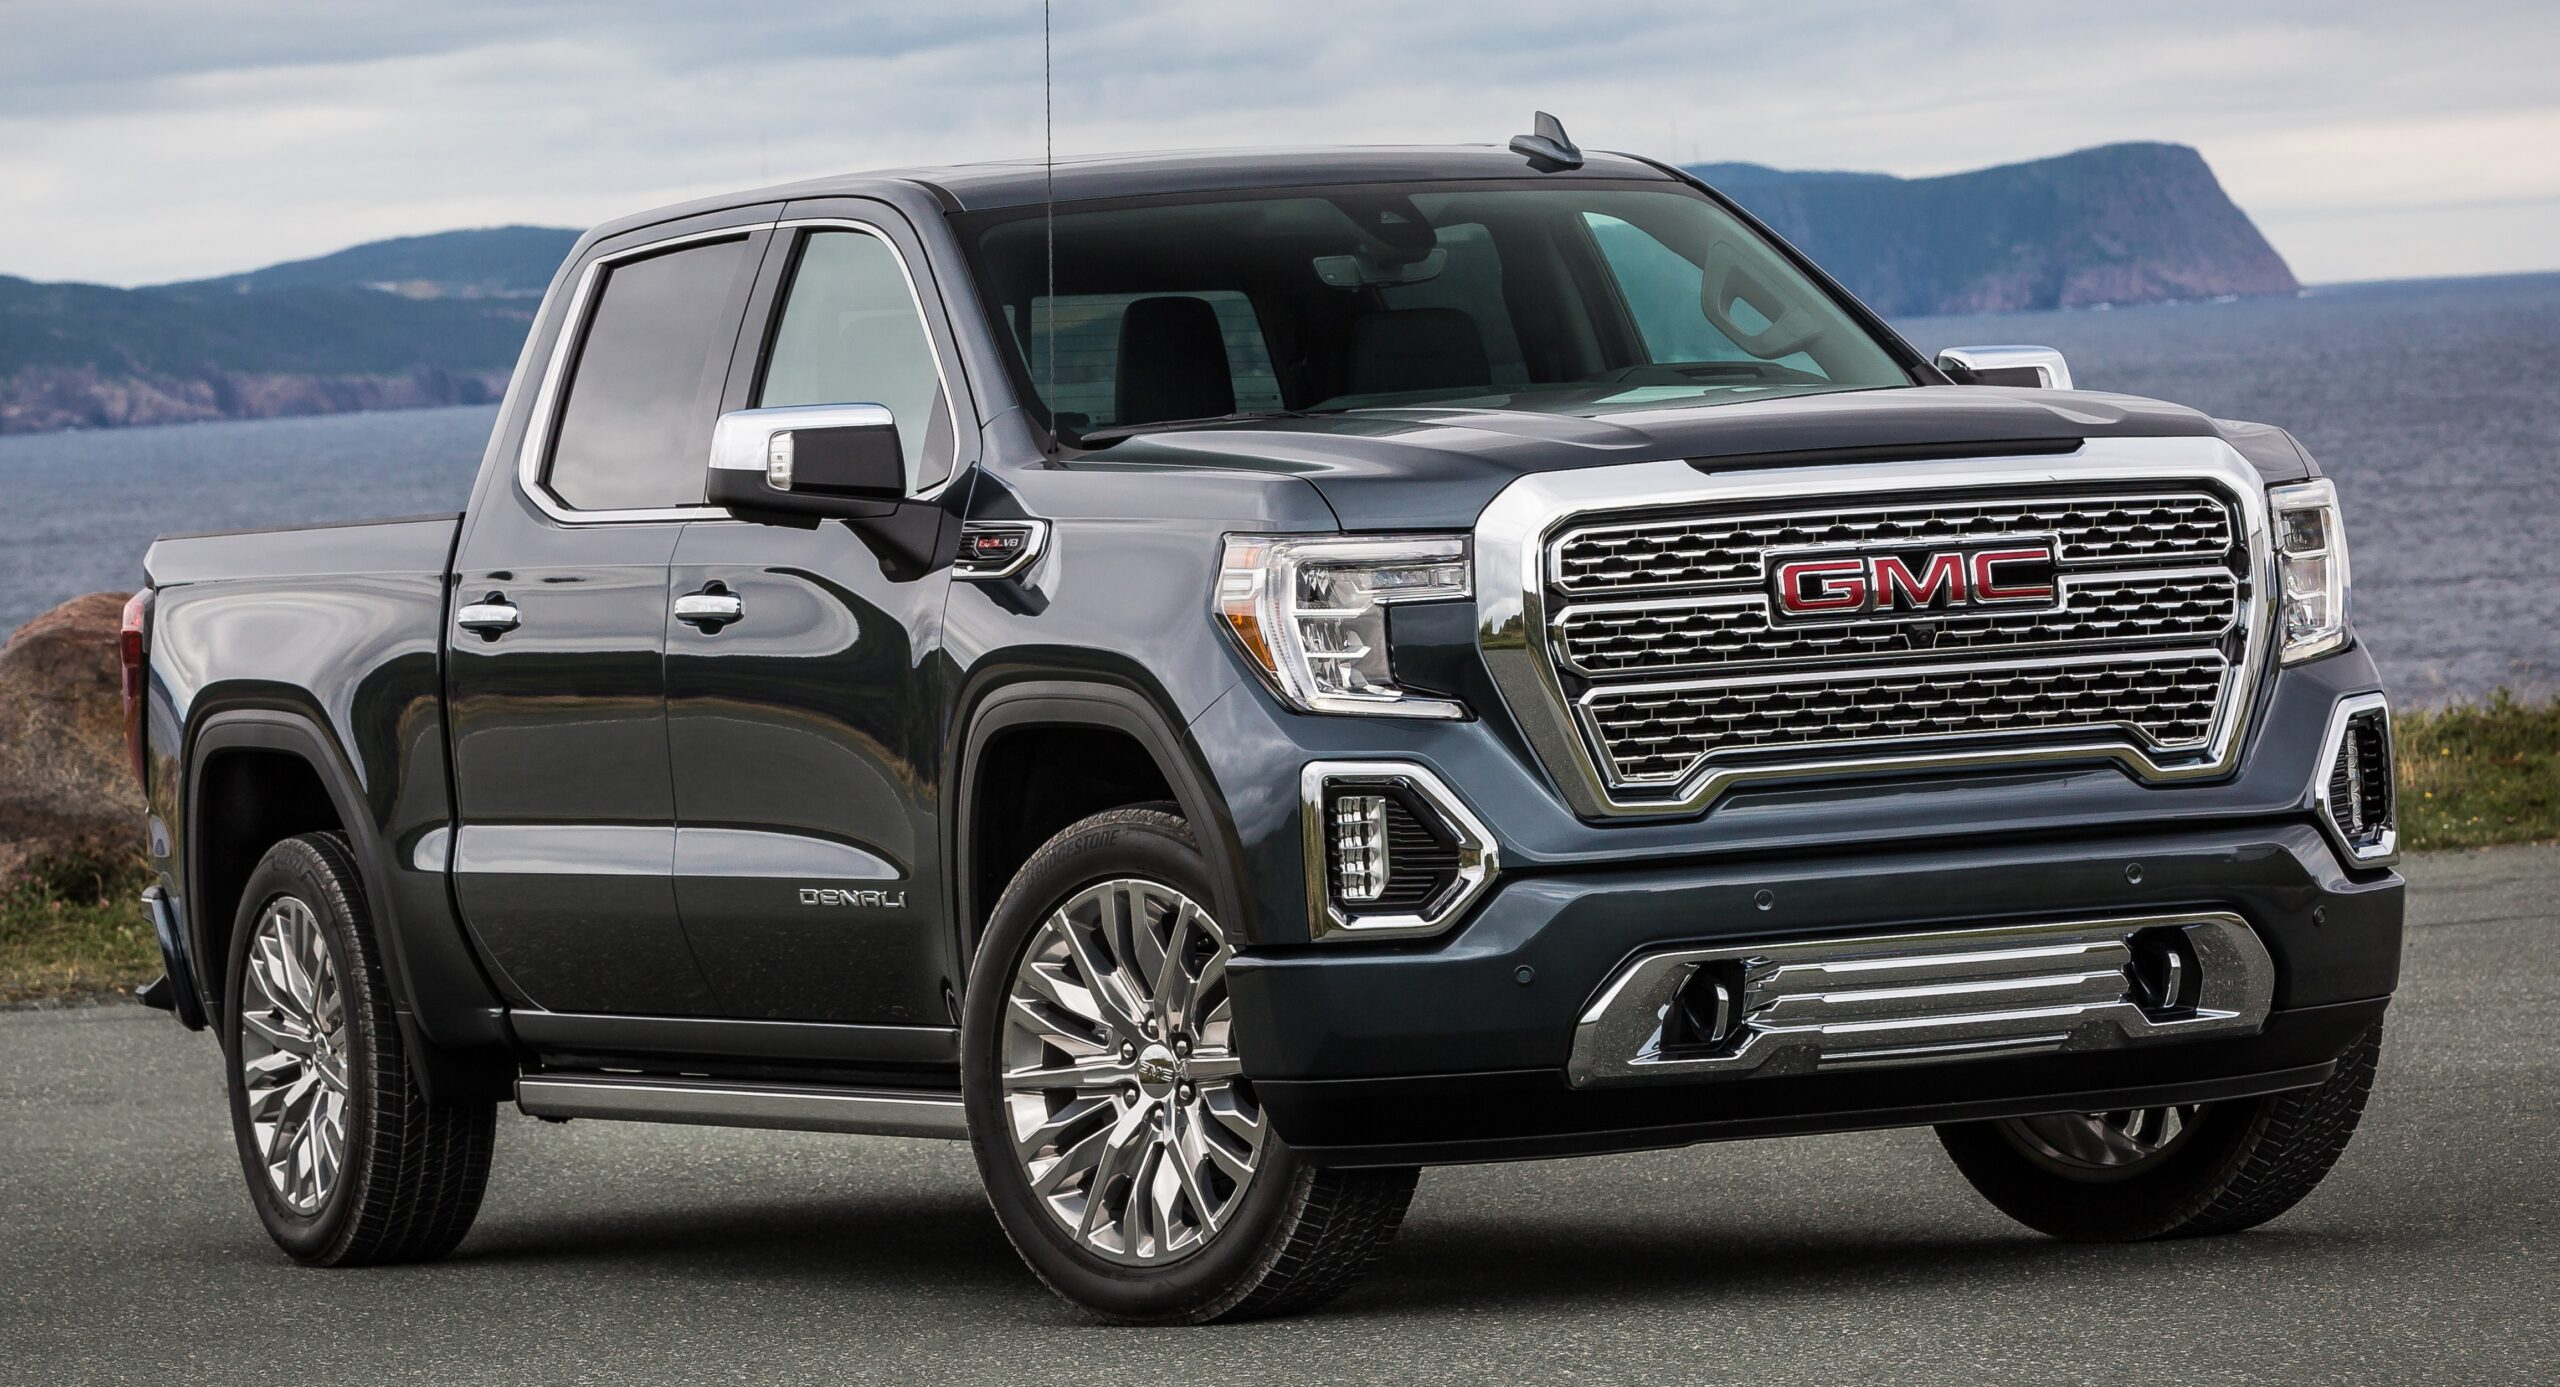 The diesel-powered 2020 GMC Sierra 1500 Crew Cab led among pickups in the AAA Car Guide.